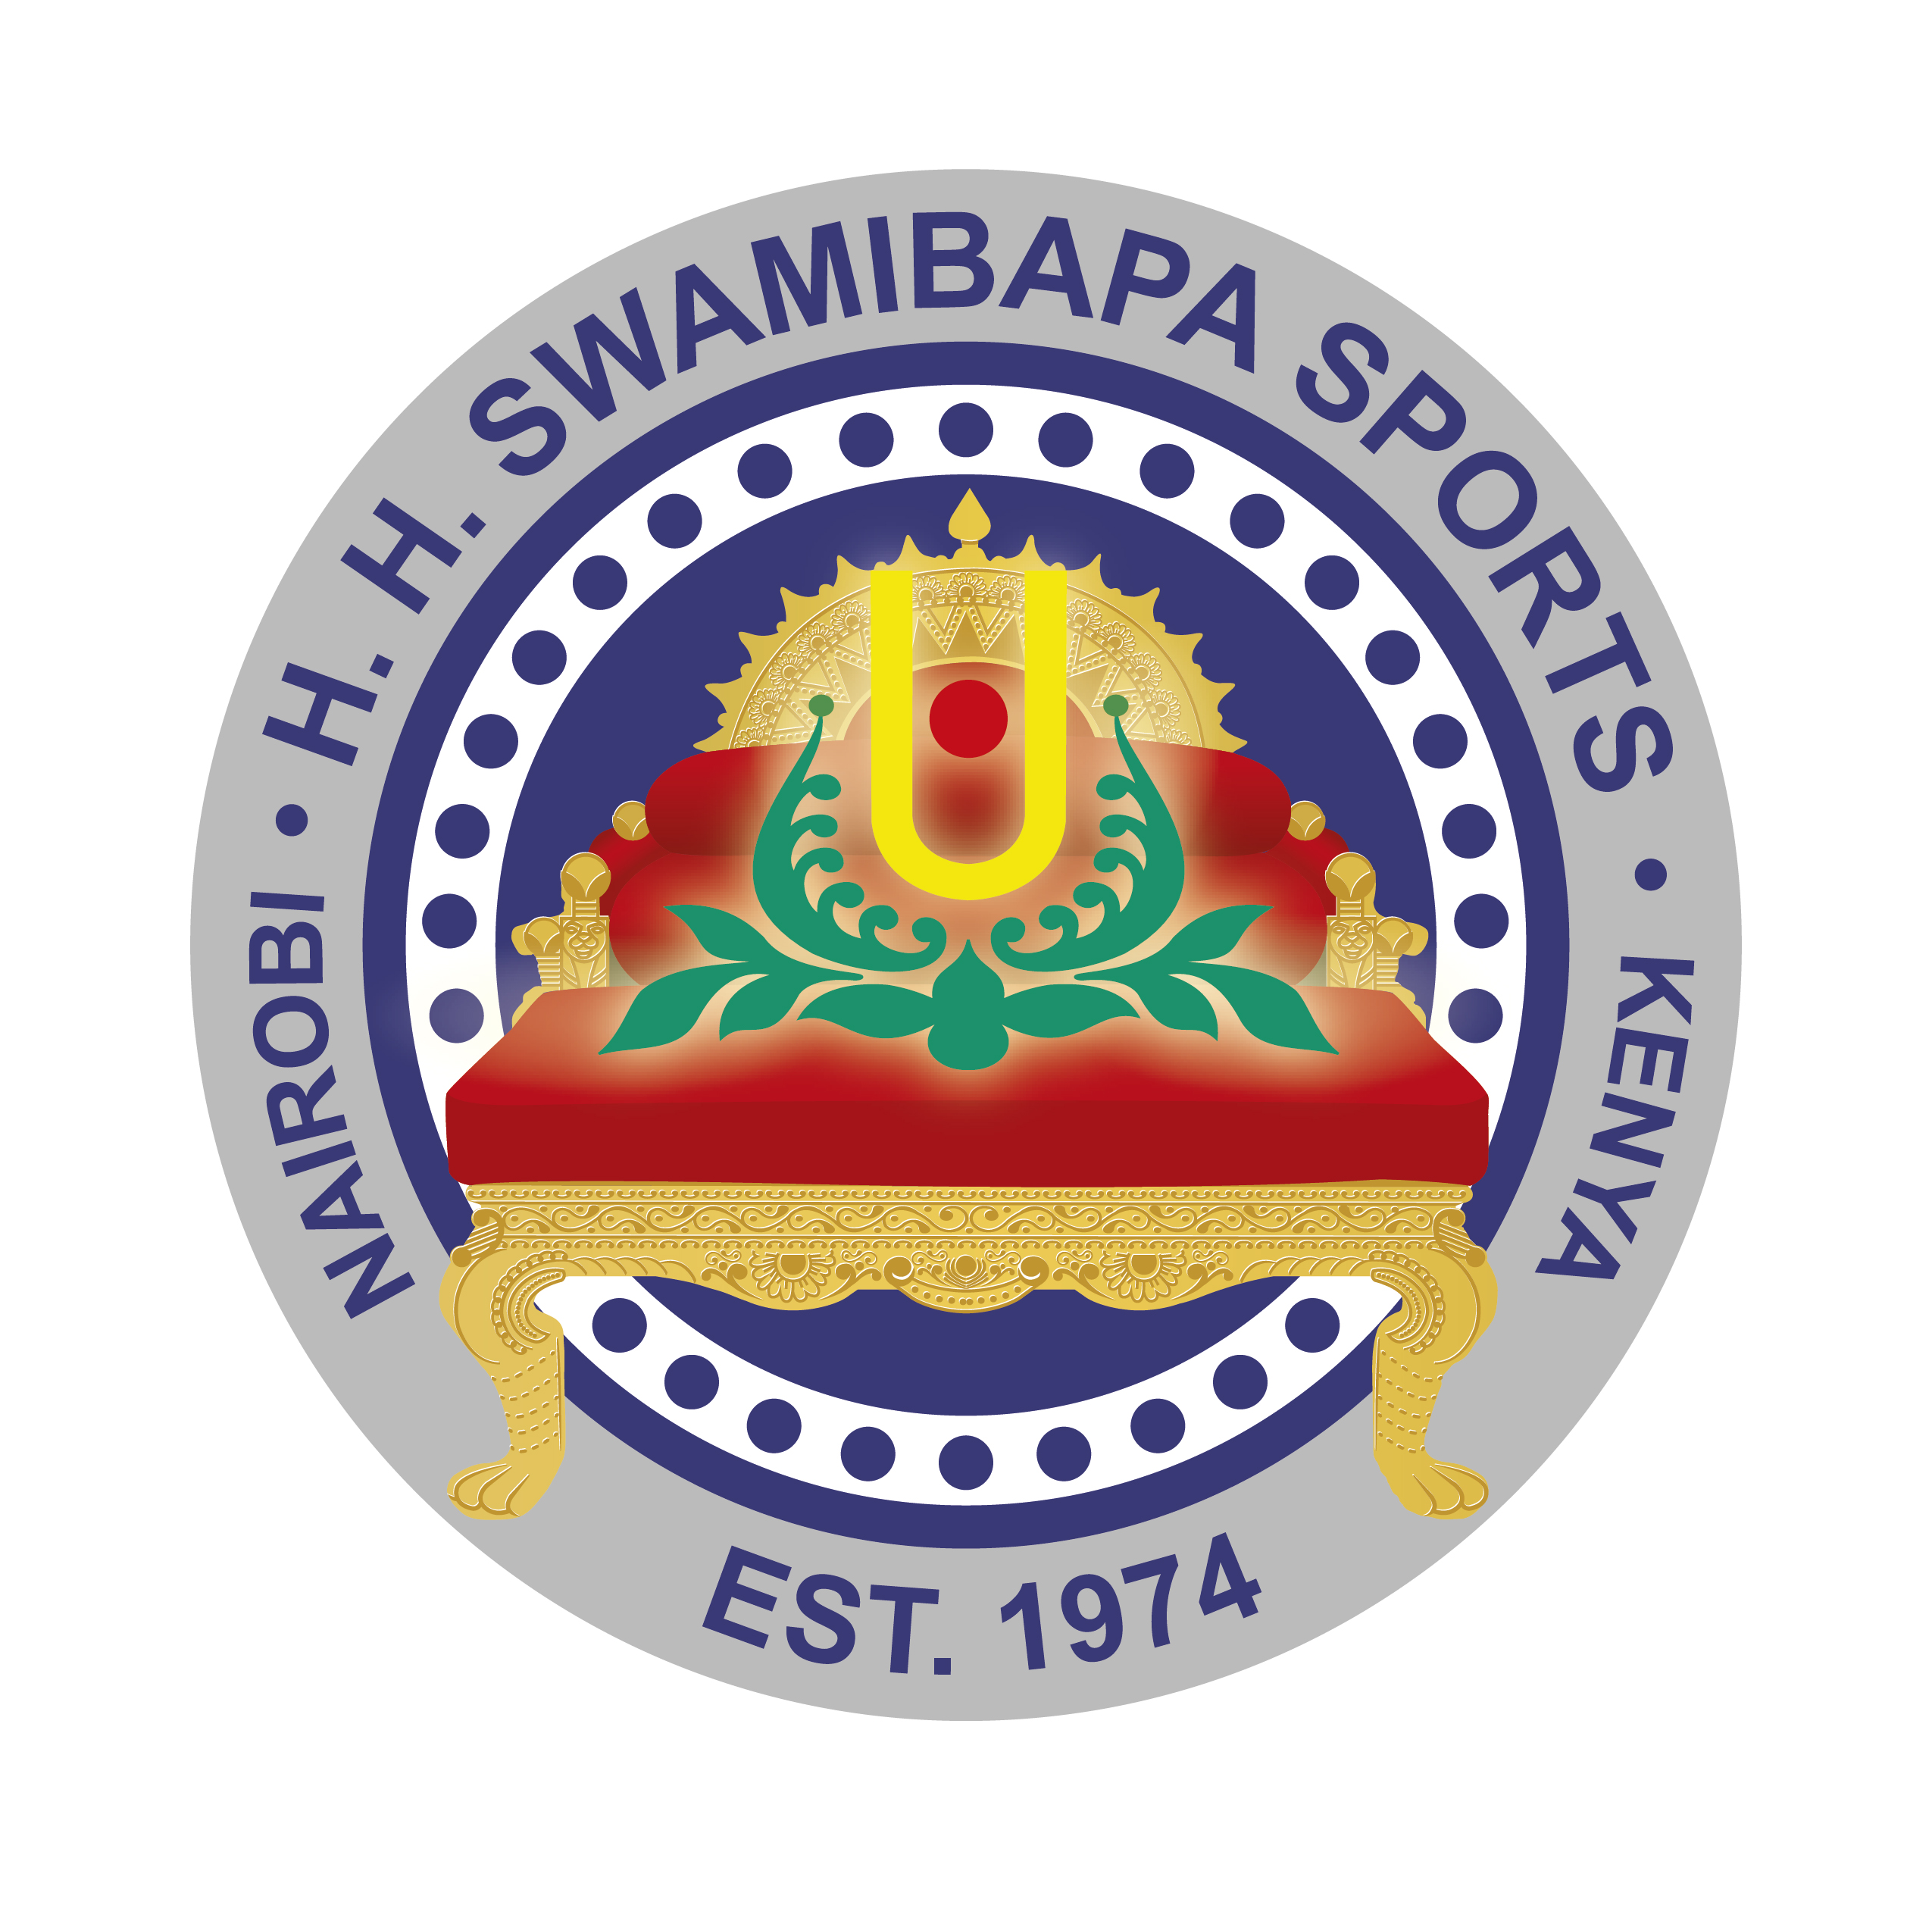 Swamibapa Sports Club, Swamibapa A